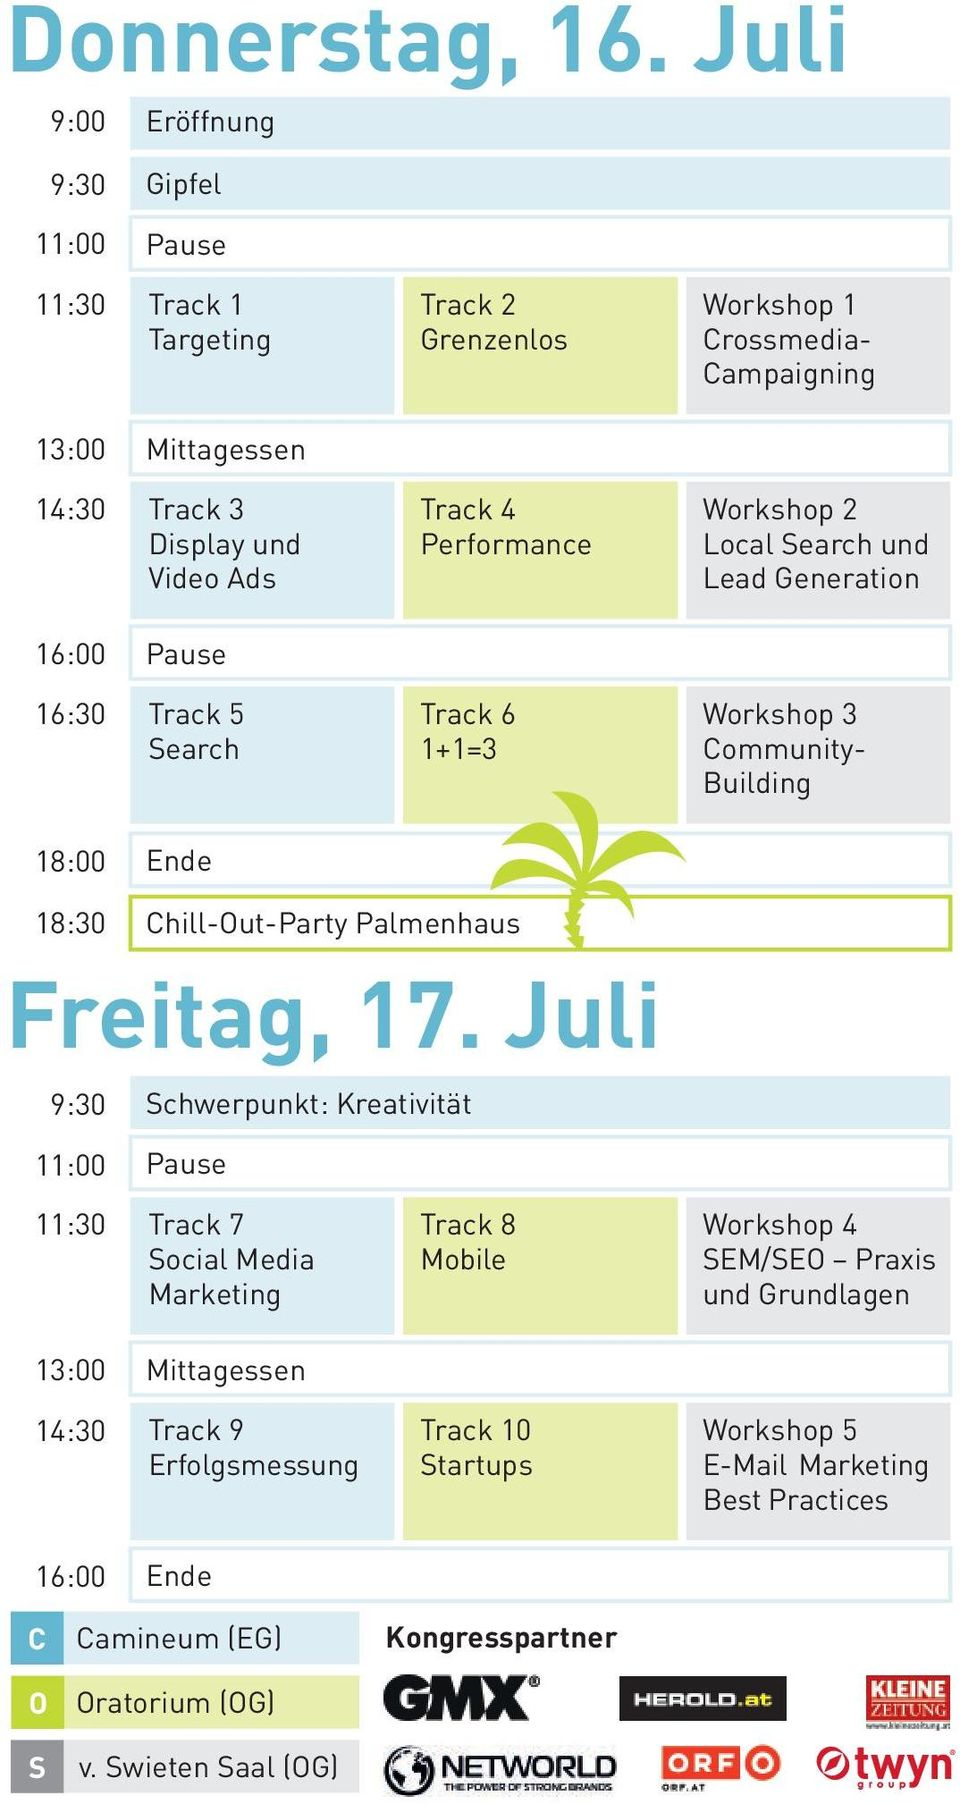 Track 4 Performance Workshop 2 Local earch und Lead Generation 16:00 Pause 16:30 Track 5 earch Track 6 1+1=3 Workshop 3 Community- Building 18:00 Ende 18:30 Chill-ut-Party